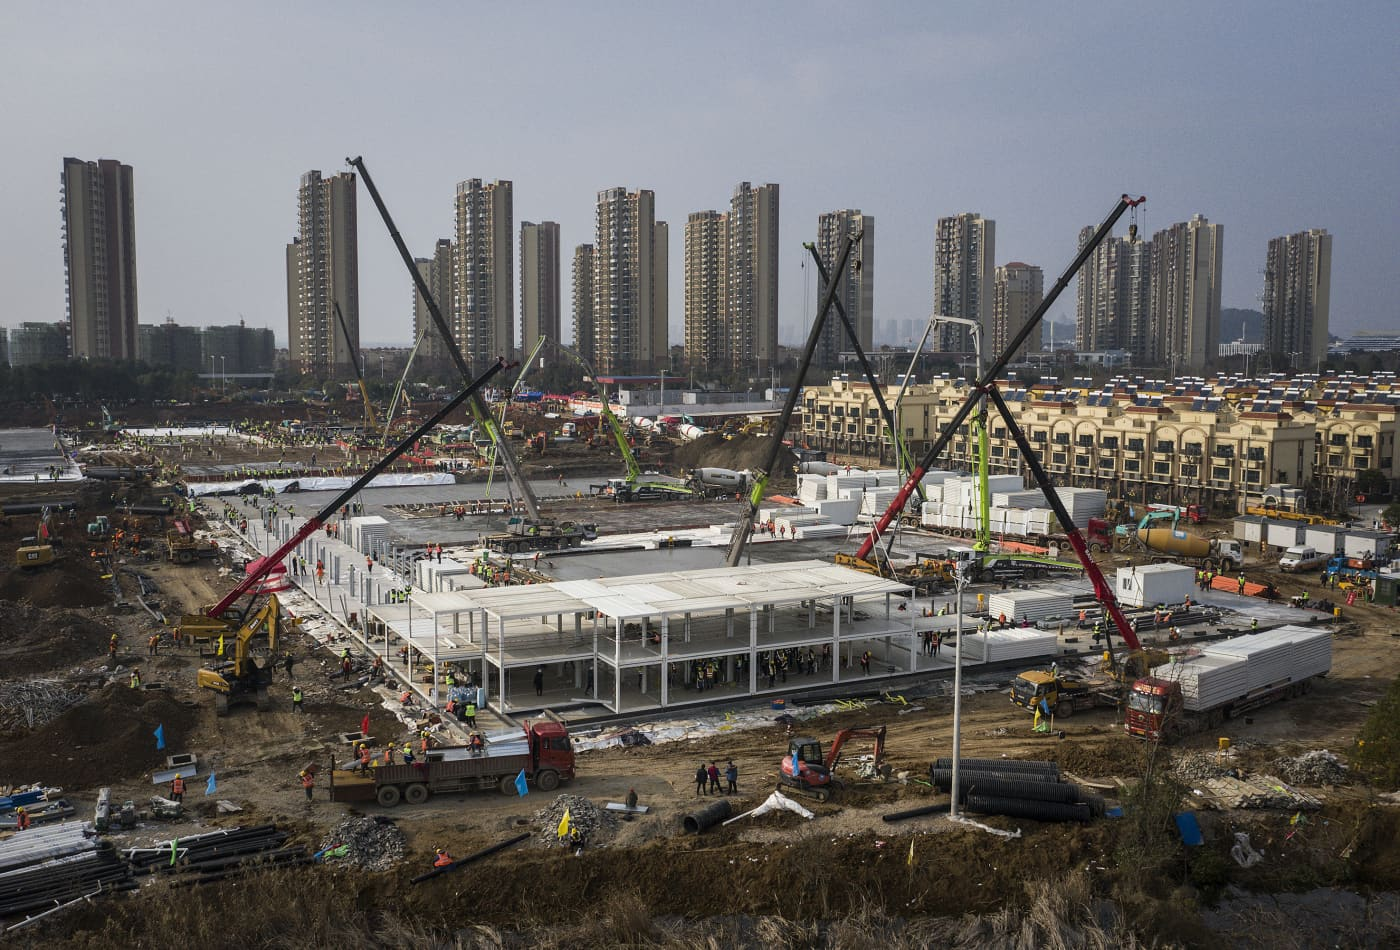 In pictures: China is building two hospitals in less than two weeks to combat coronavirus